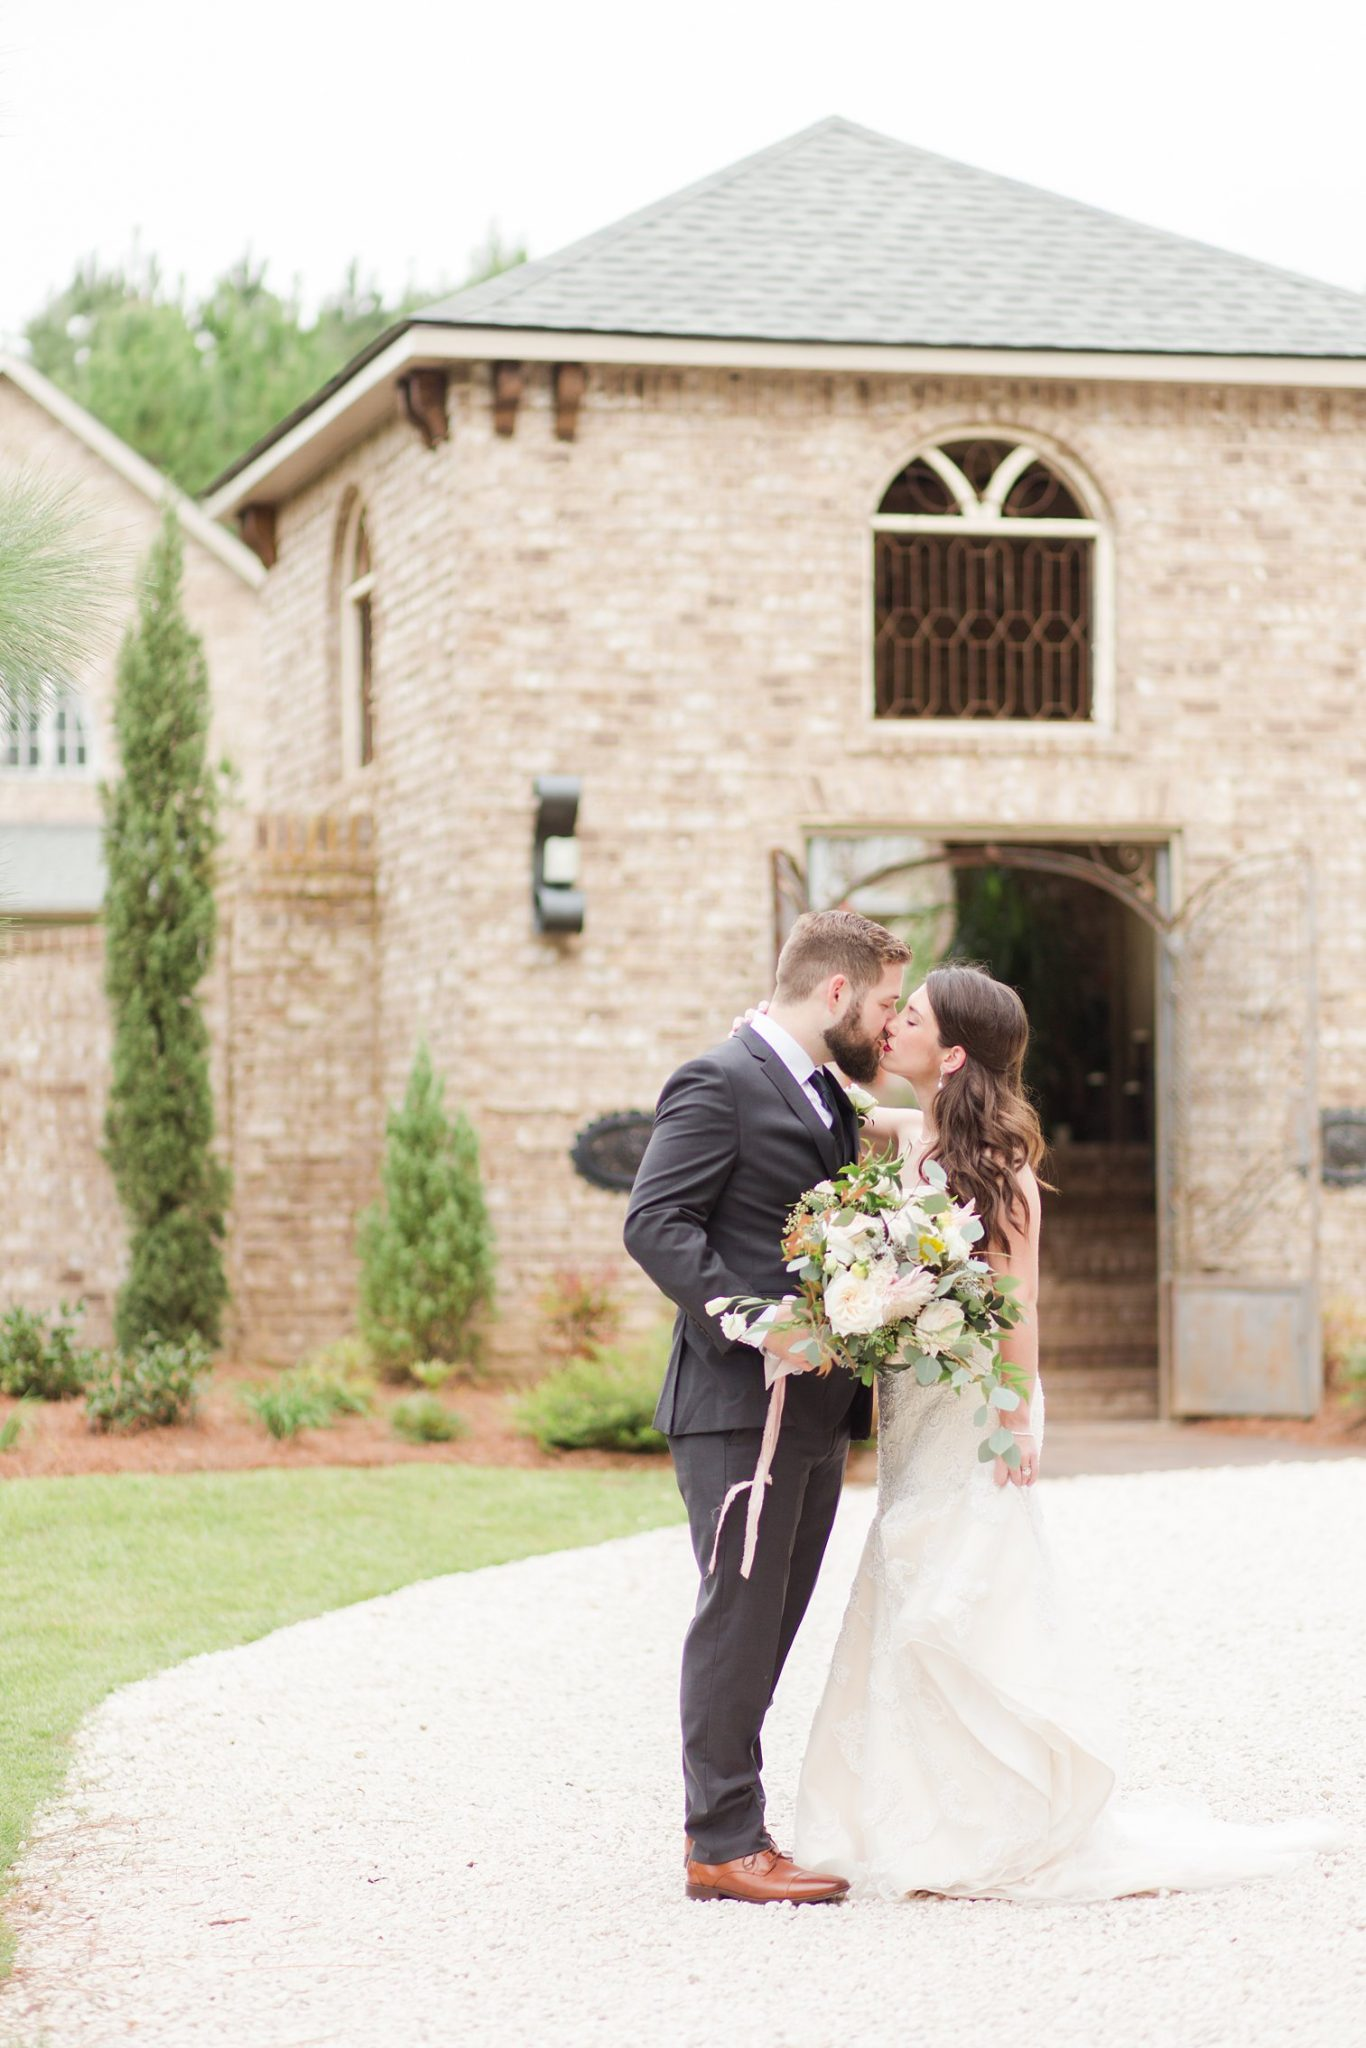 wedding day-bride and groom-portraits-photos-kissing